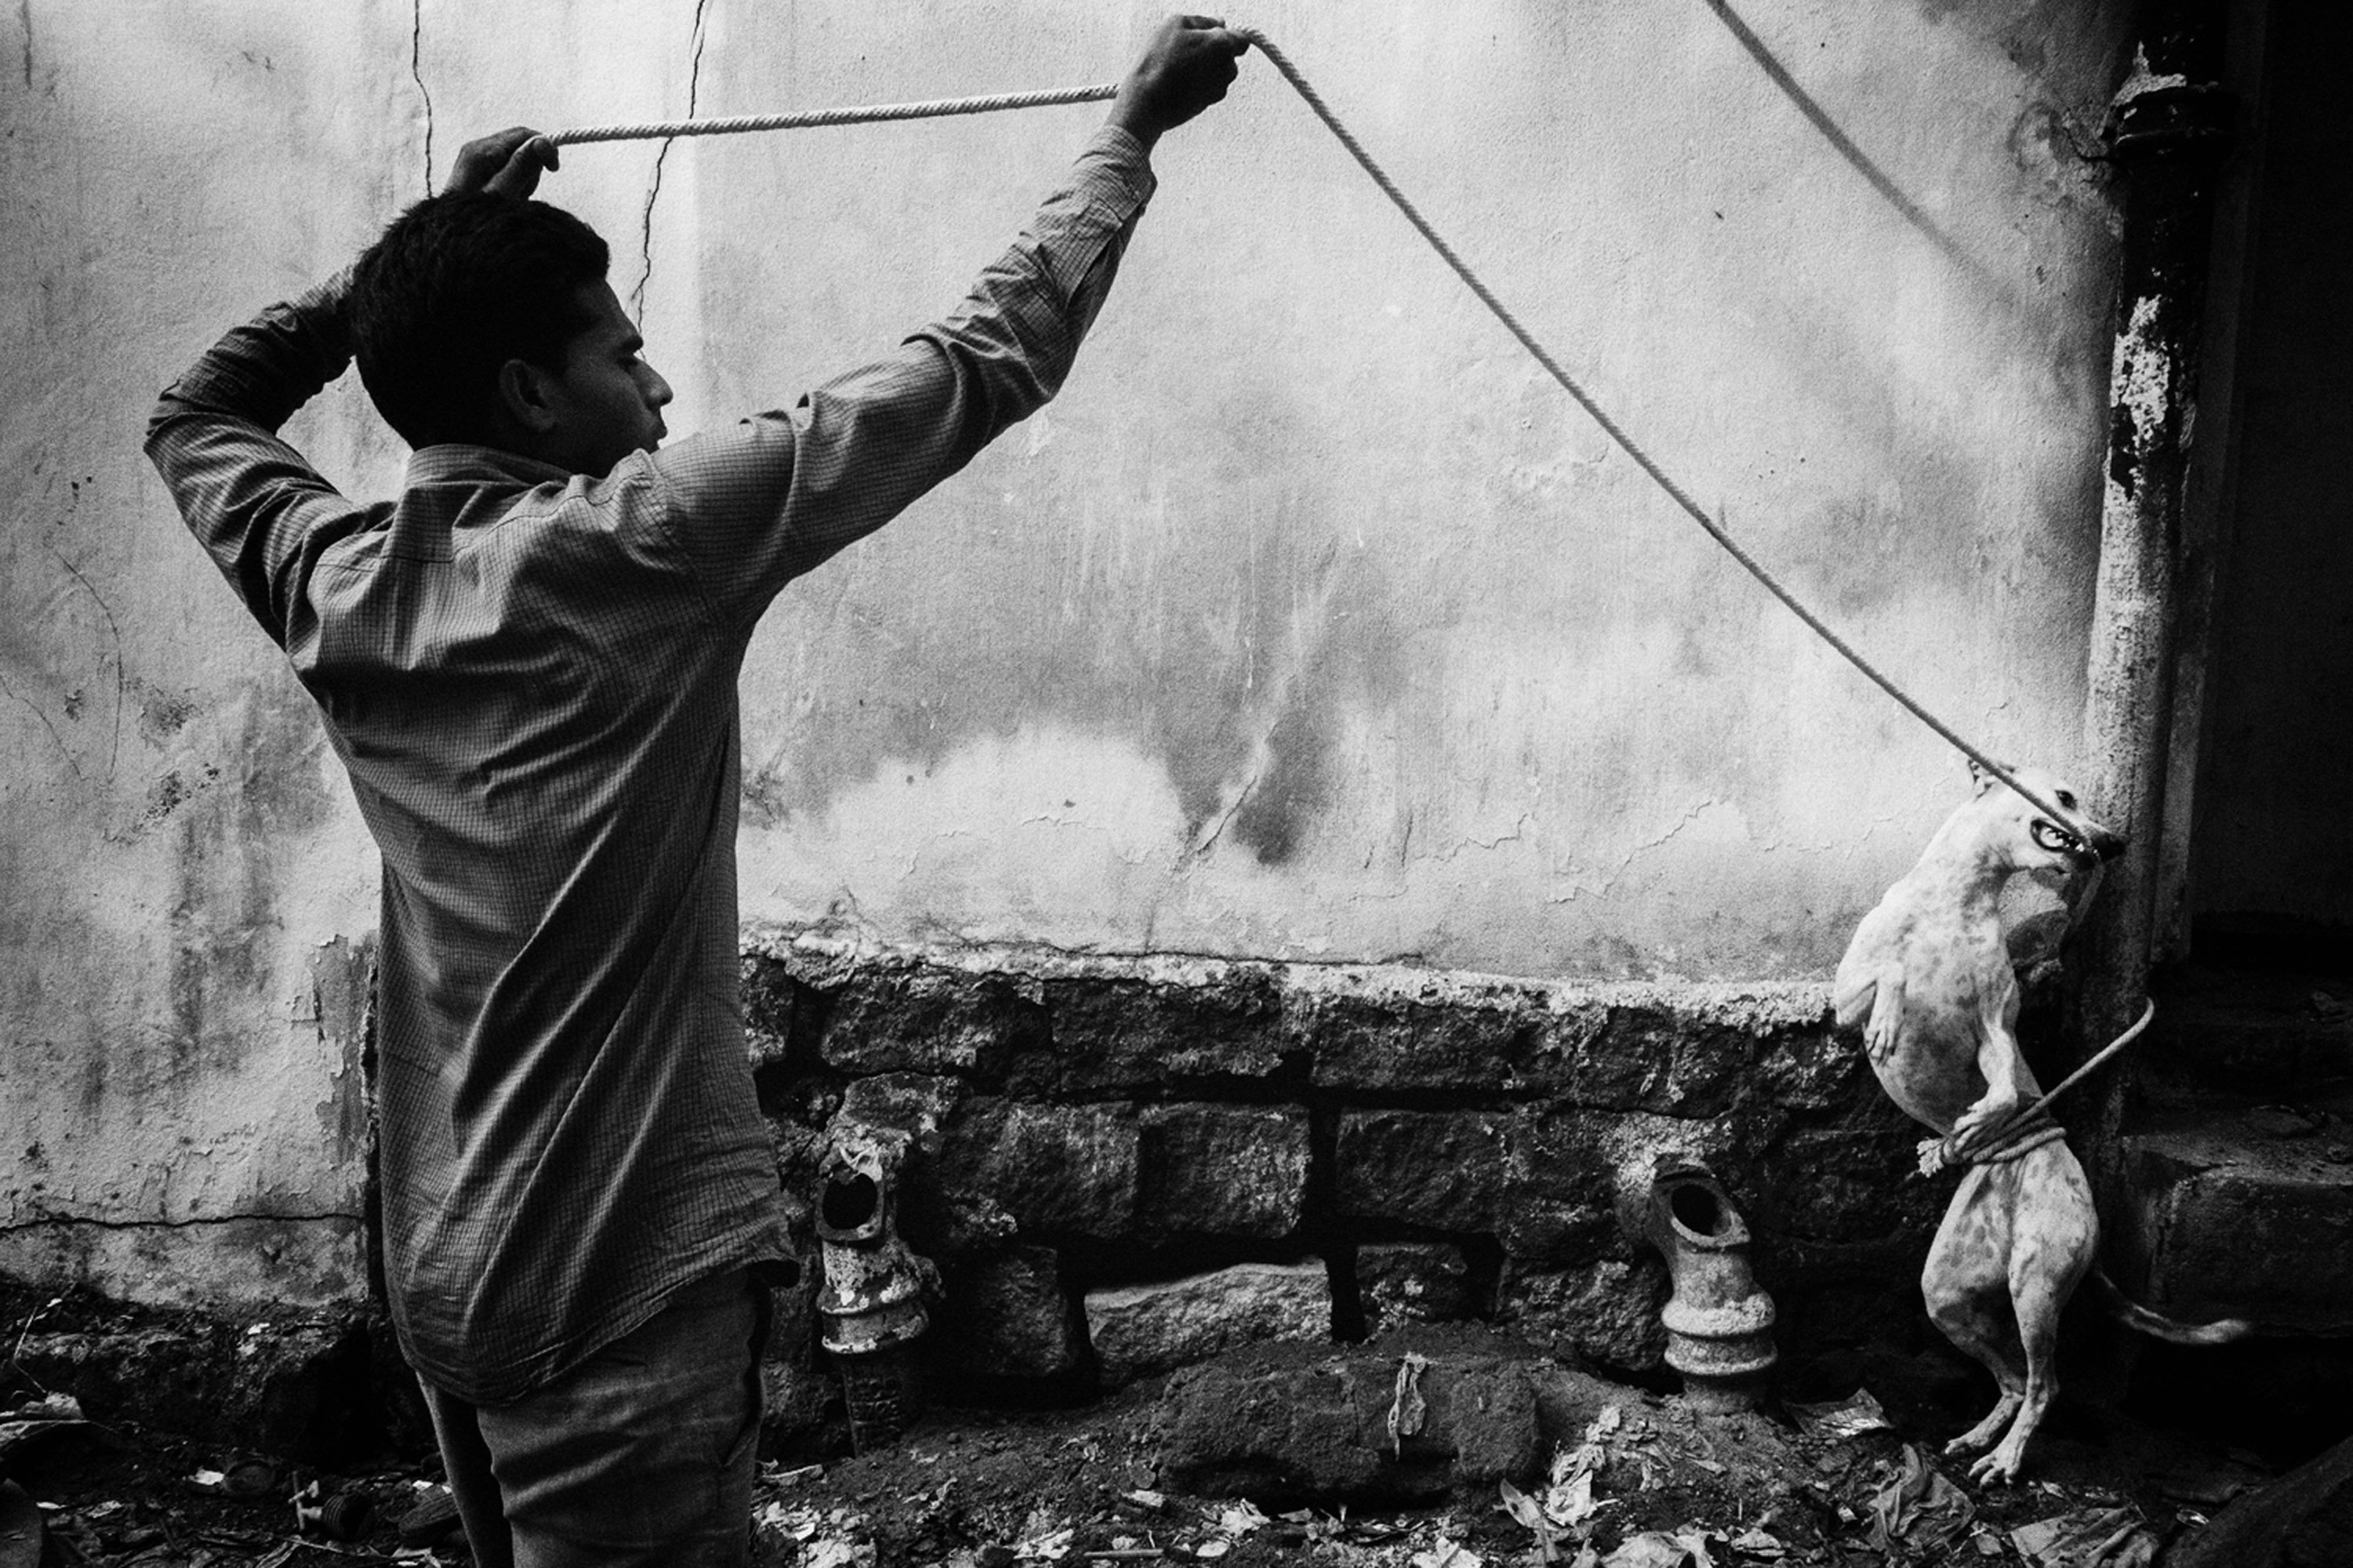 street photography by swarat ghosh